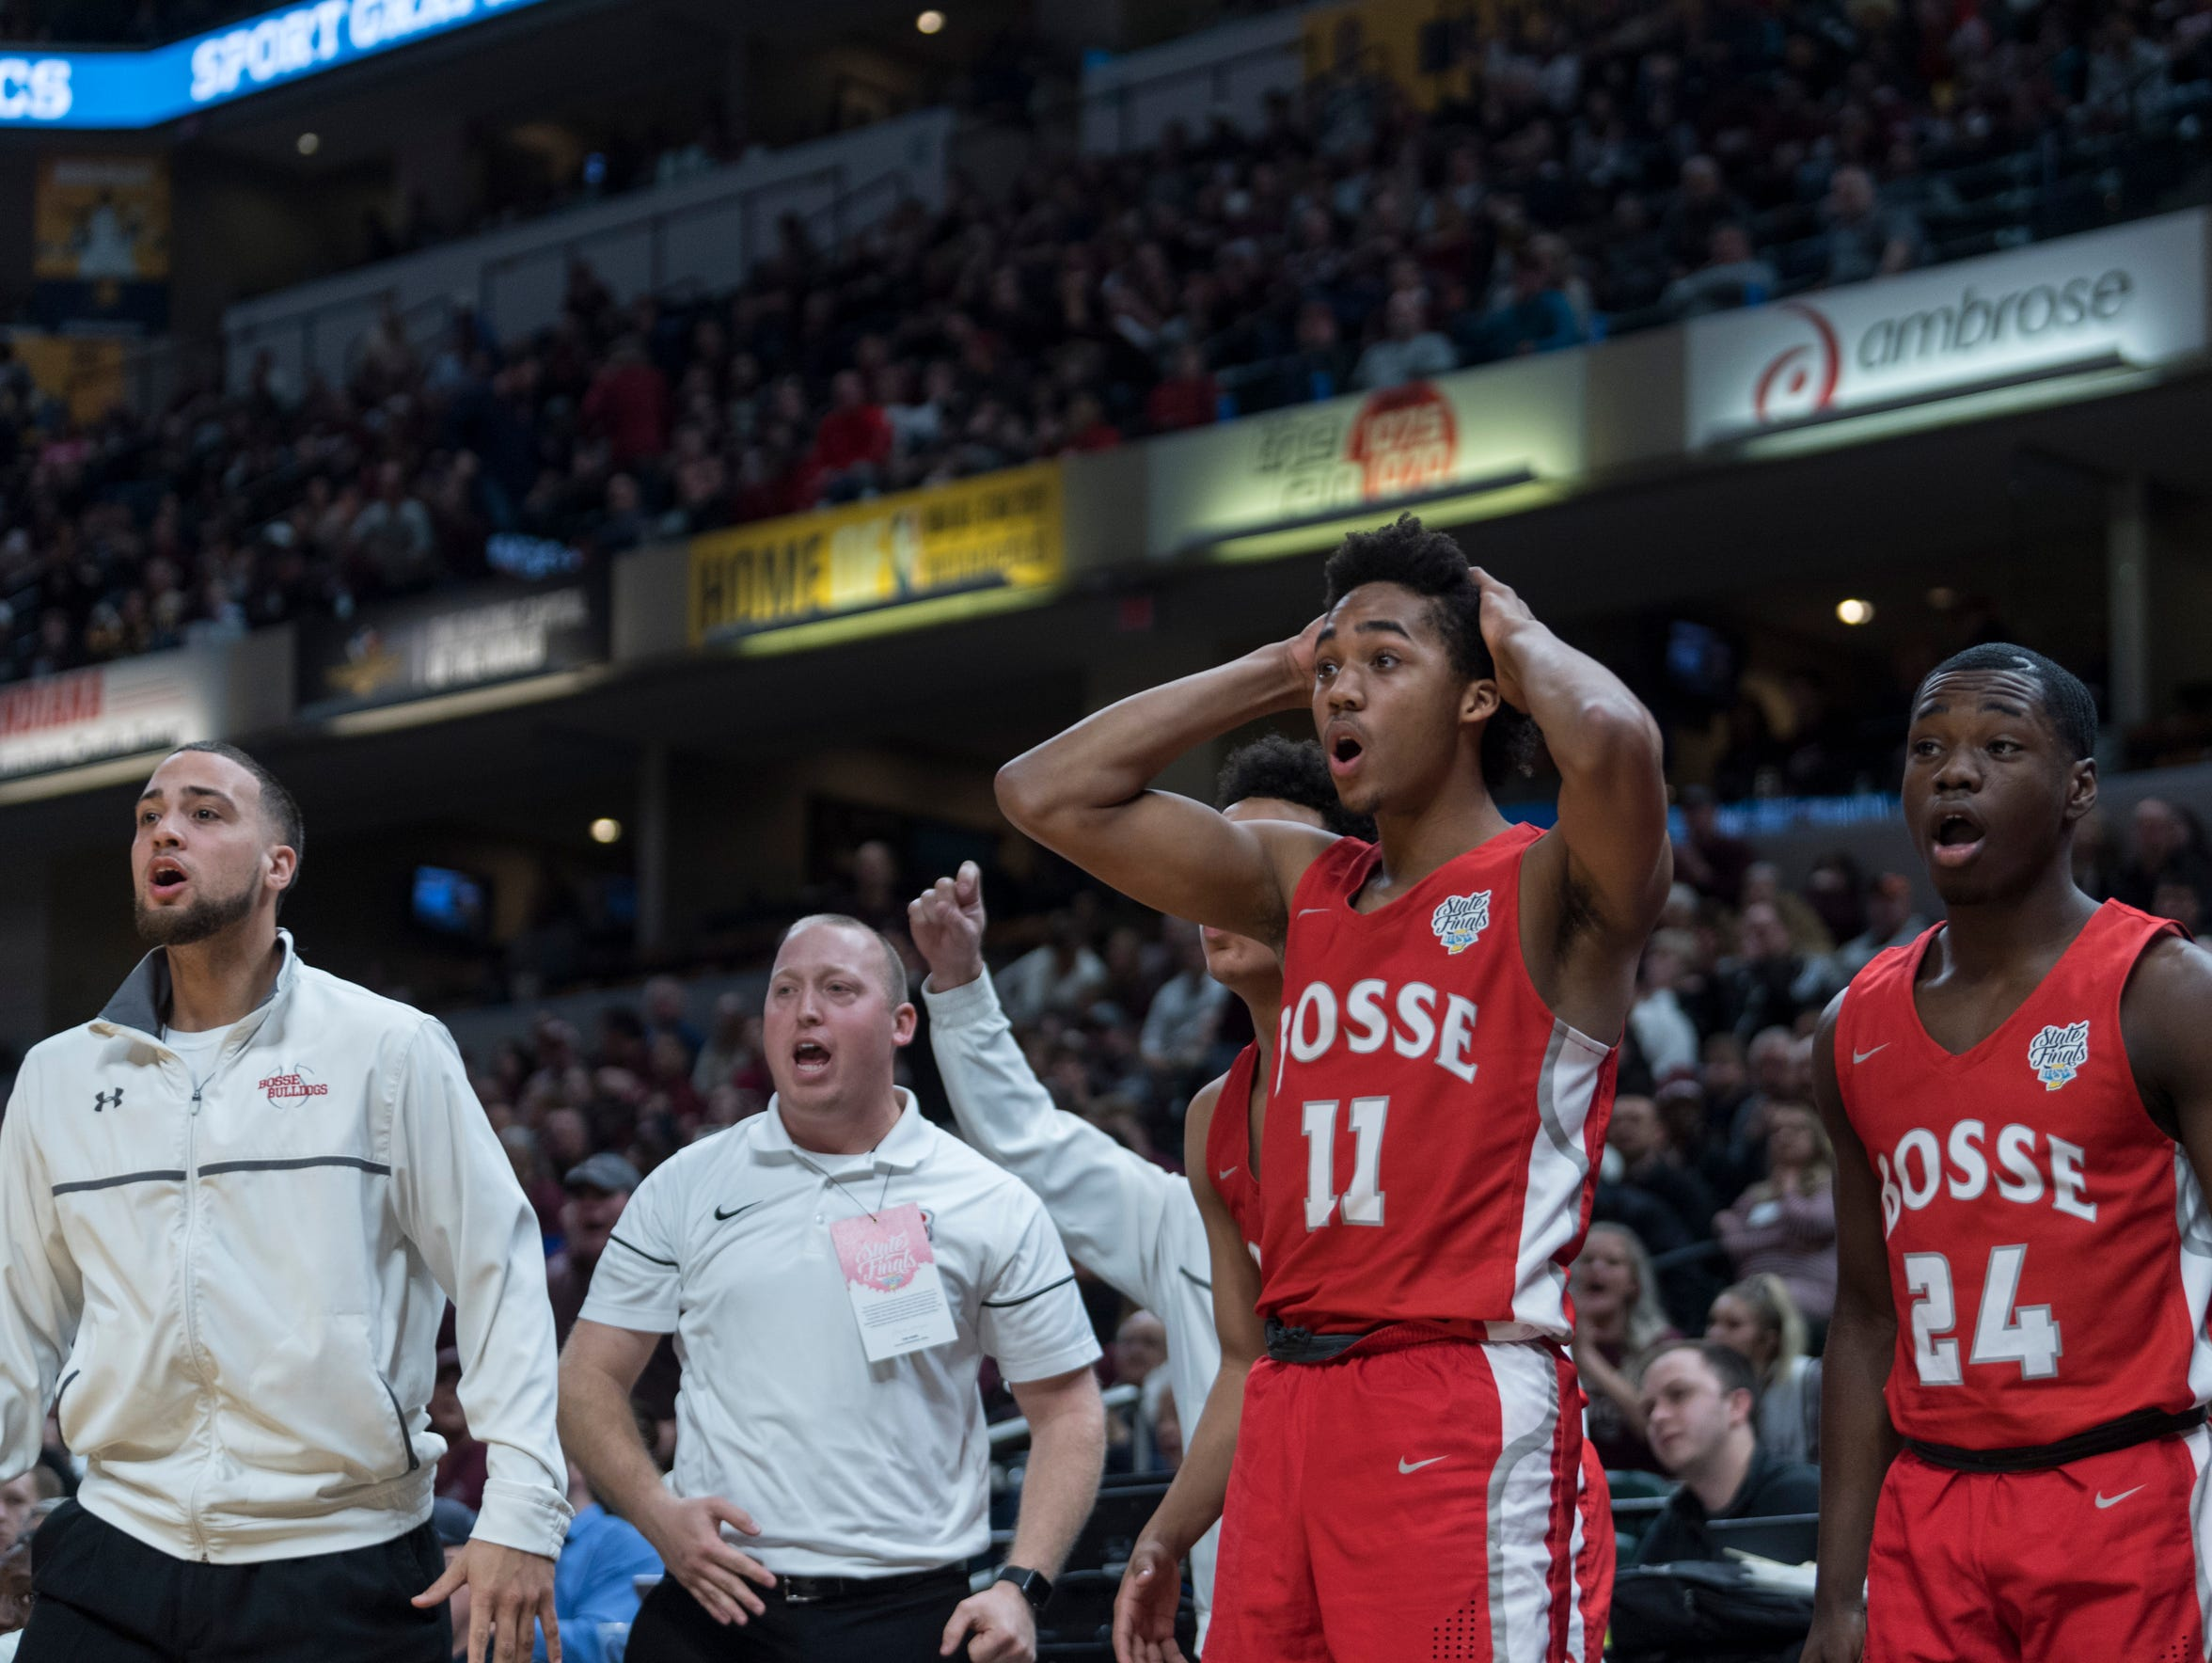 The Bosse Bulldogs bench reacts to foul call during